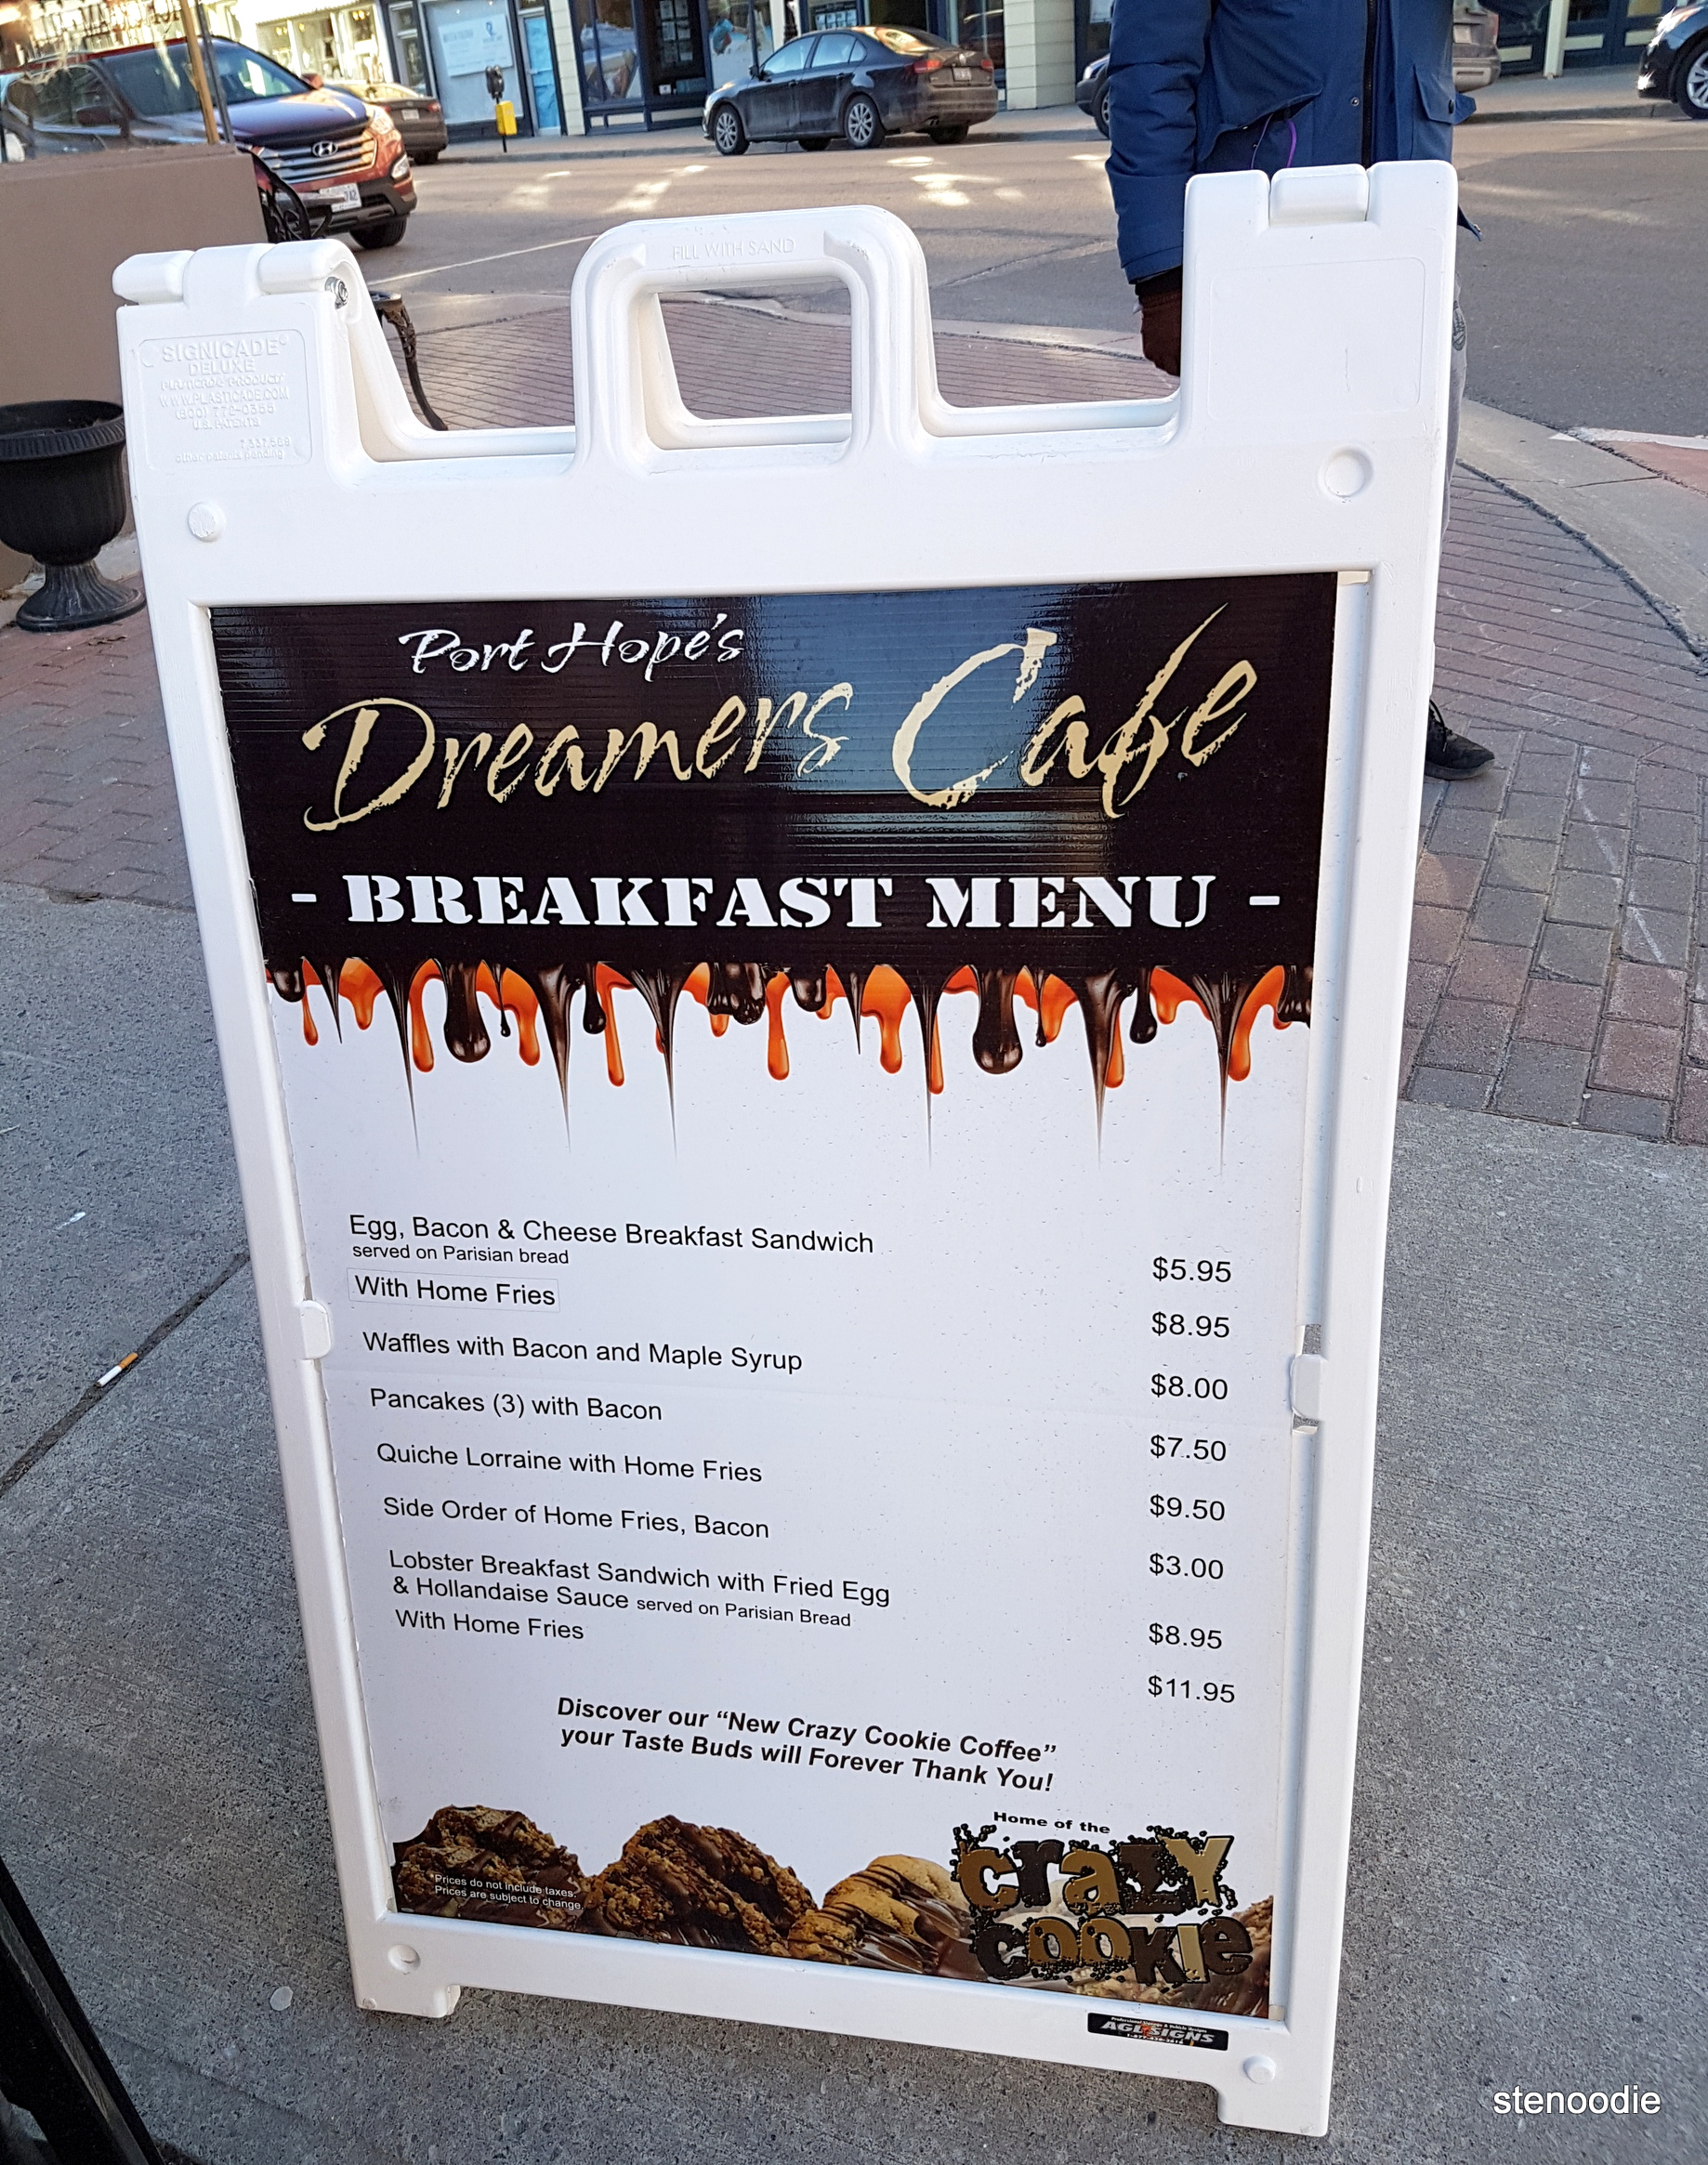 Dreamers' Cafe breakfast menu and prices